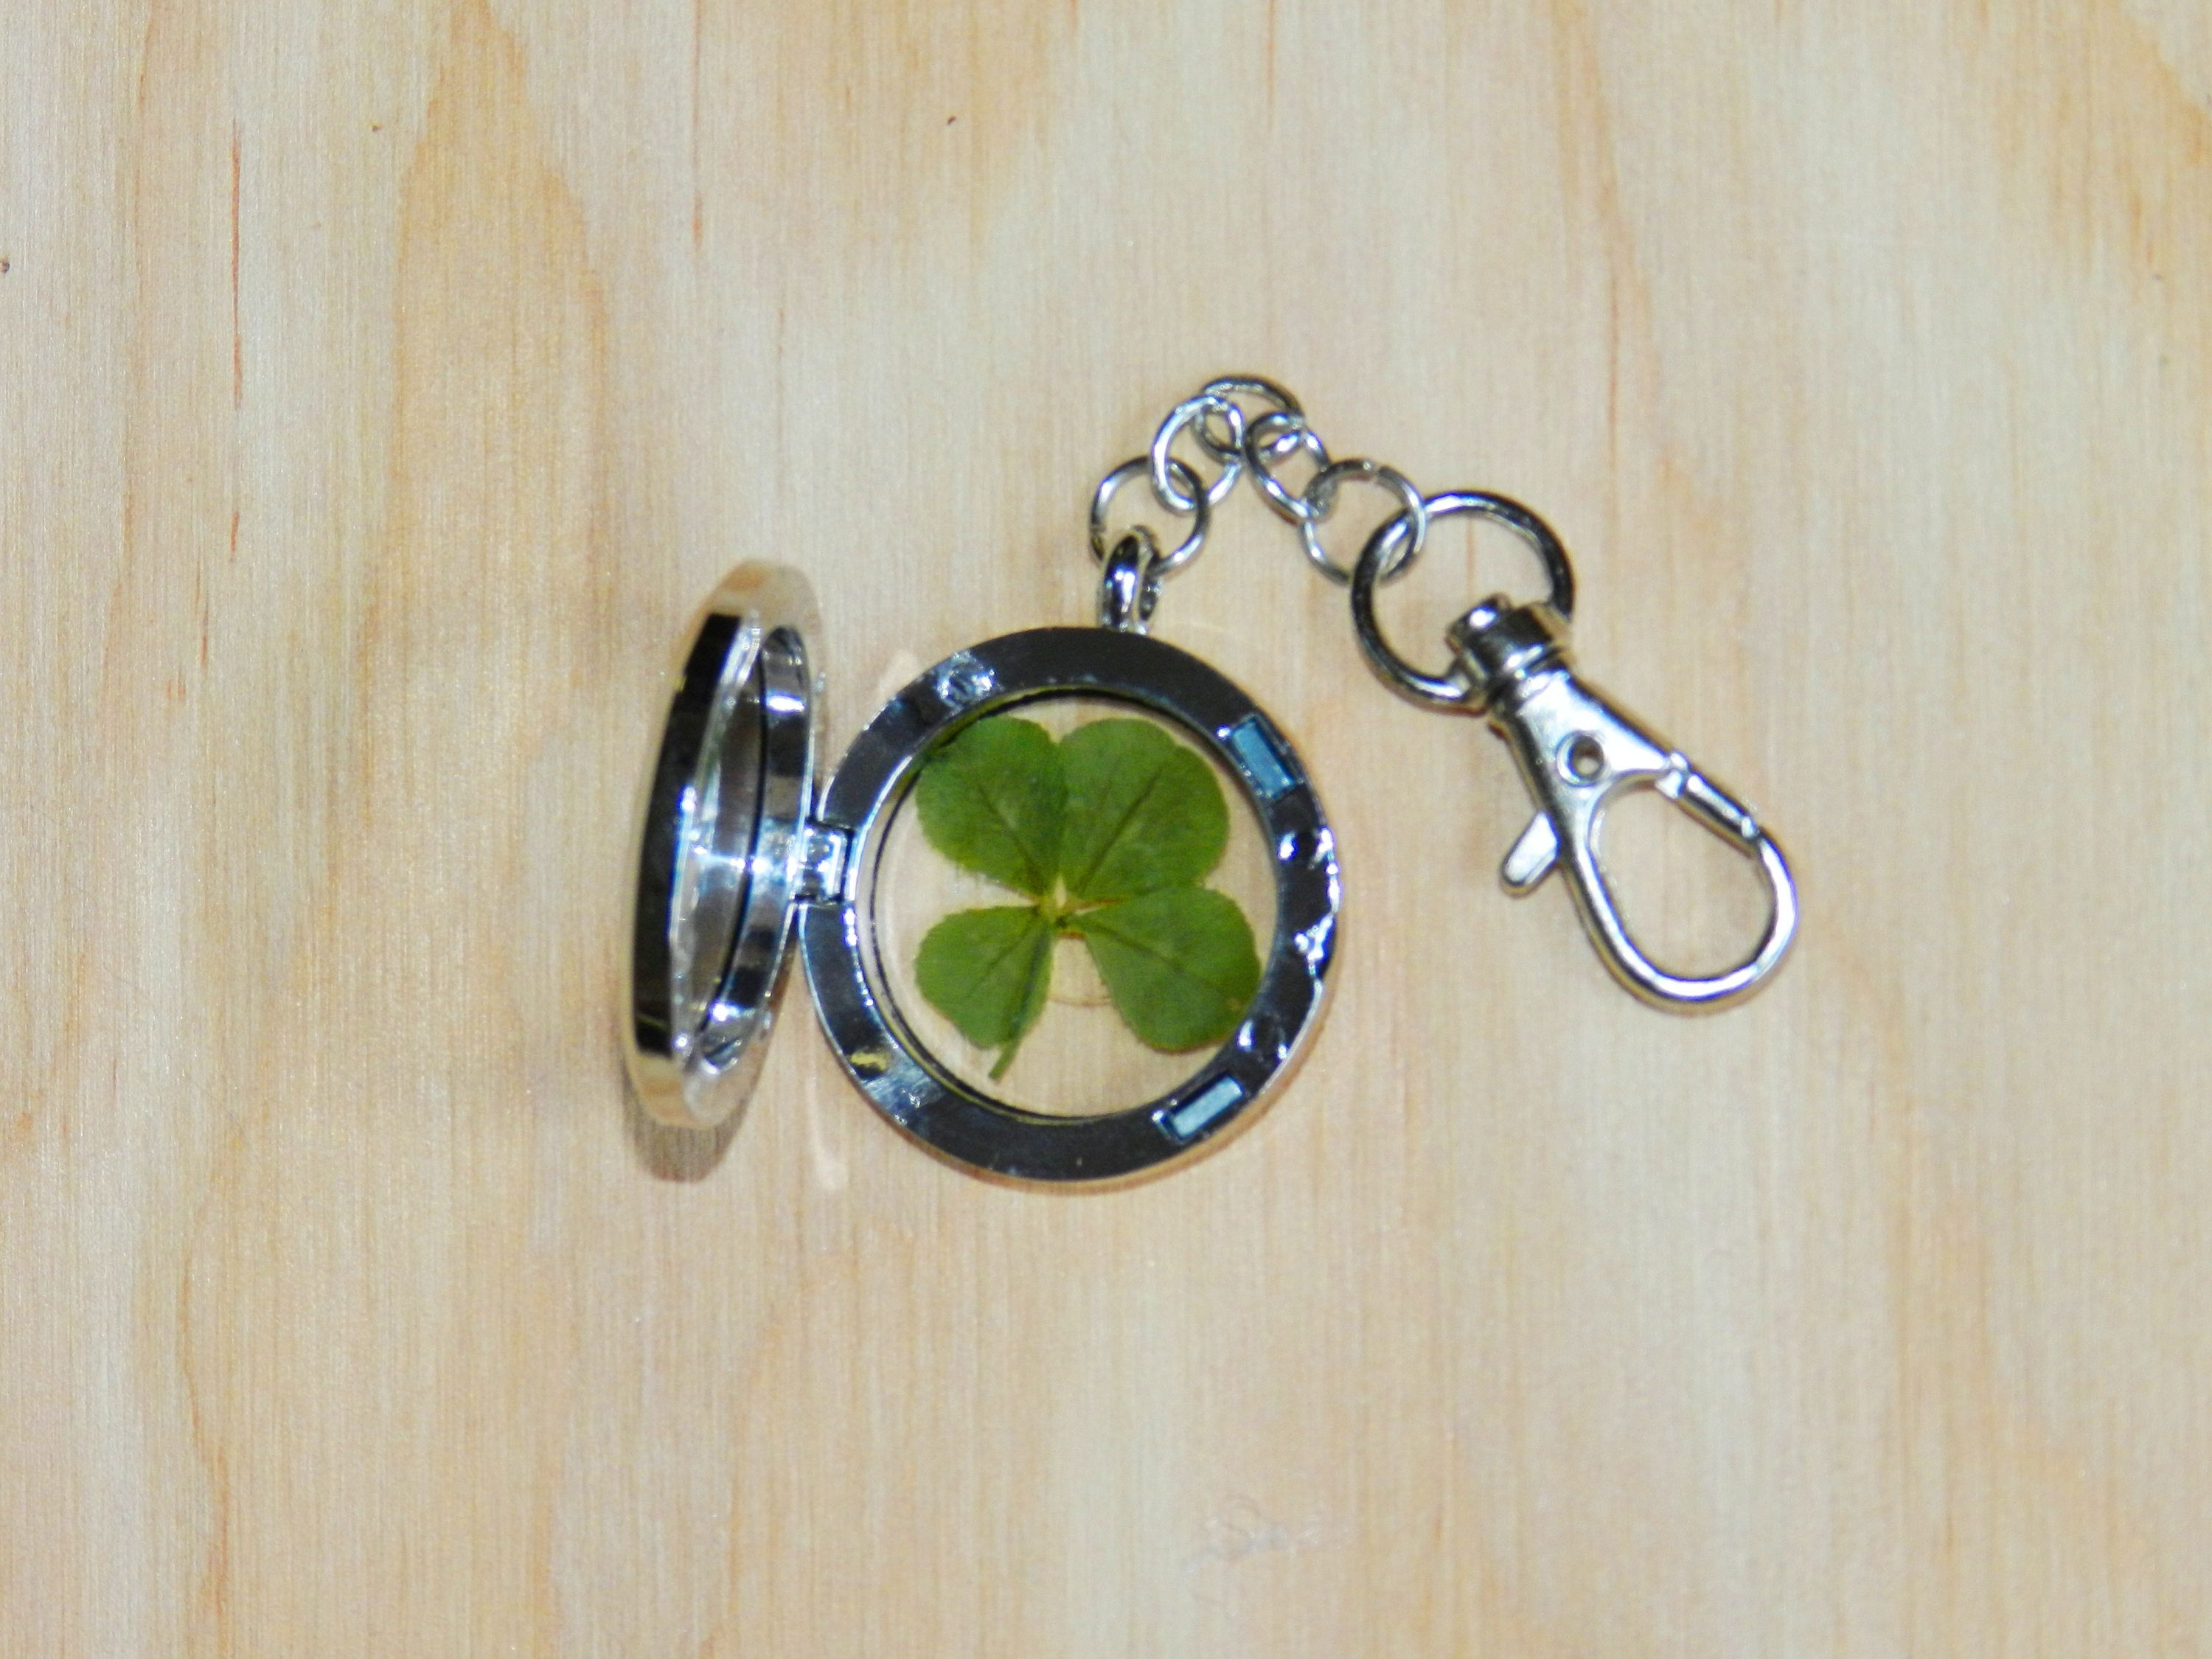 4 Four Leaf Clover Keychain, Lucky Key Ring, Good Luck Charm Pertaining To Most Recently Released Lucky Four Leaf Clover Open Rings (View 16 of 25)